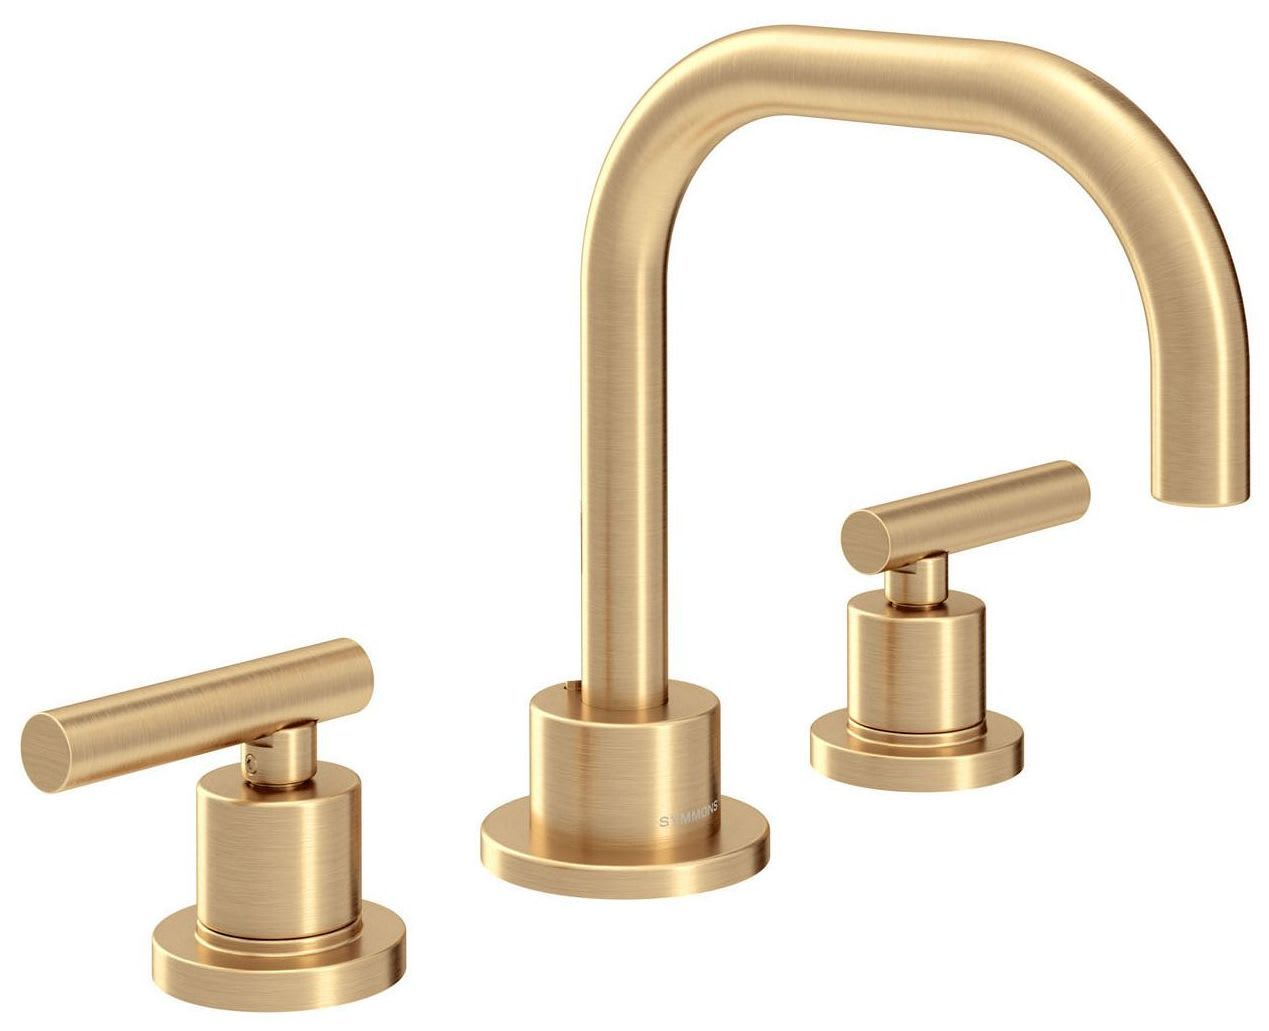 Symmons Slw 3512 Bbz 1 0 Dia 1 0 Gpm Widespread Build Com In 2021 Brass Bathroom Faucets Affordable Bathroom Faucet Bronze Bathroom Faucets